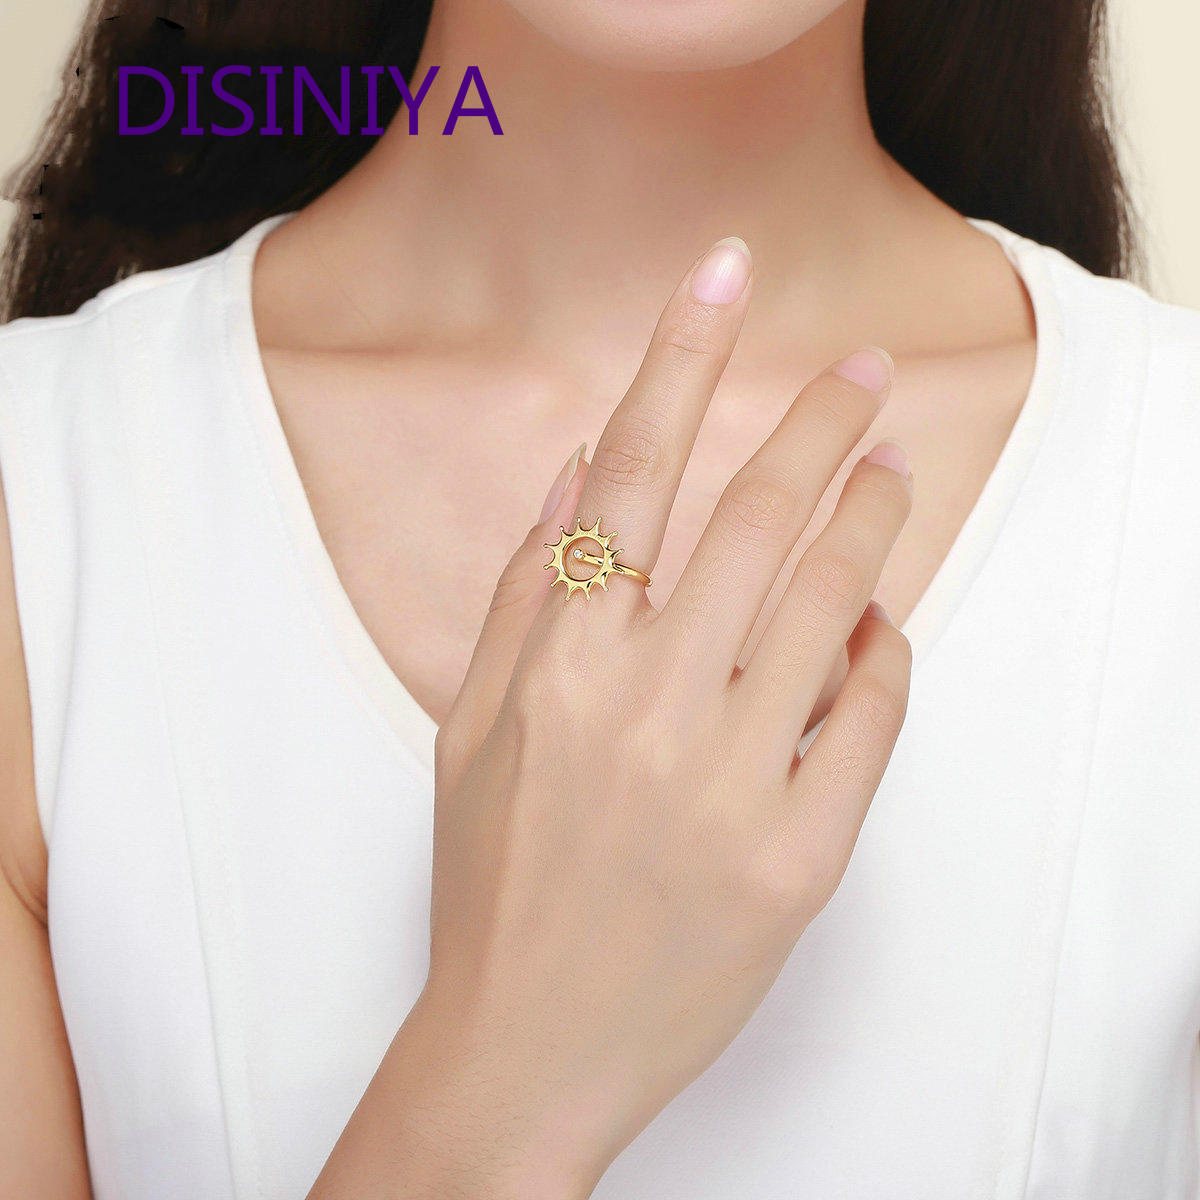 DISINIYA Geometric Jewelry Set Geometric Earrings Double Layers Necklaces Jewelry Sets for Women Fashion Jewelry Making WE171 in Jewelry Sets from Jewelry Accessories